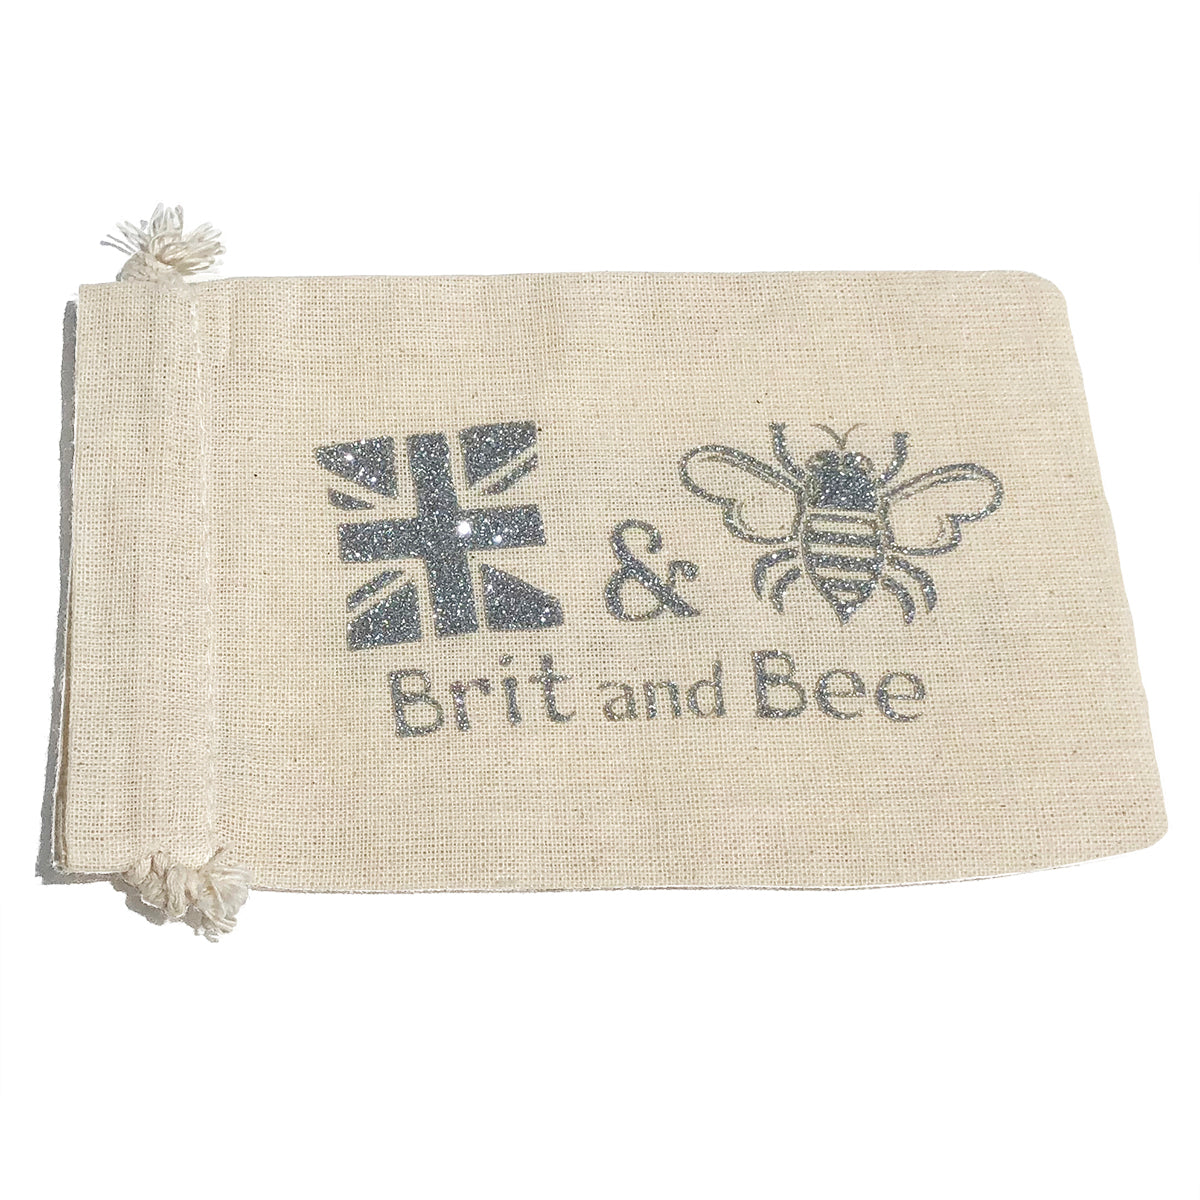 Brit and Bee Sorority Car Coasters - Zeta Tau Alpha